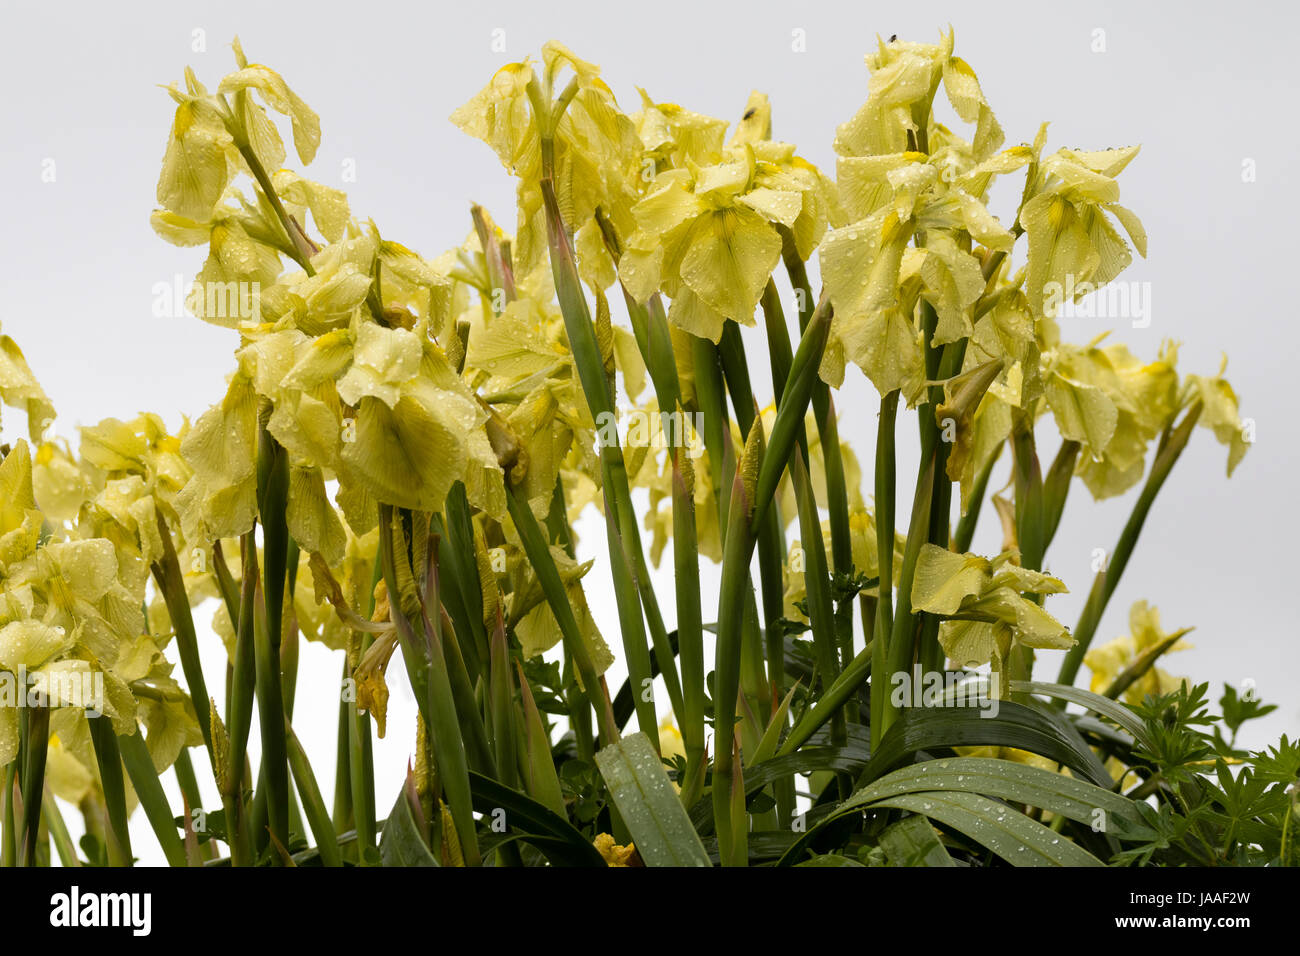 Flowers of the South African iris relative, Moraea alticola, a tall hardy alpine species - Stock Image